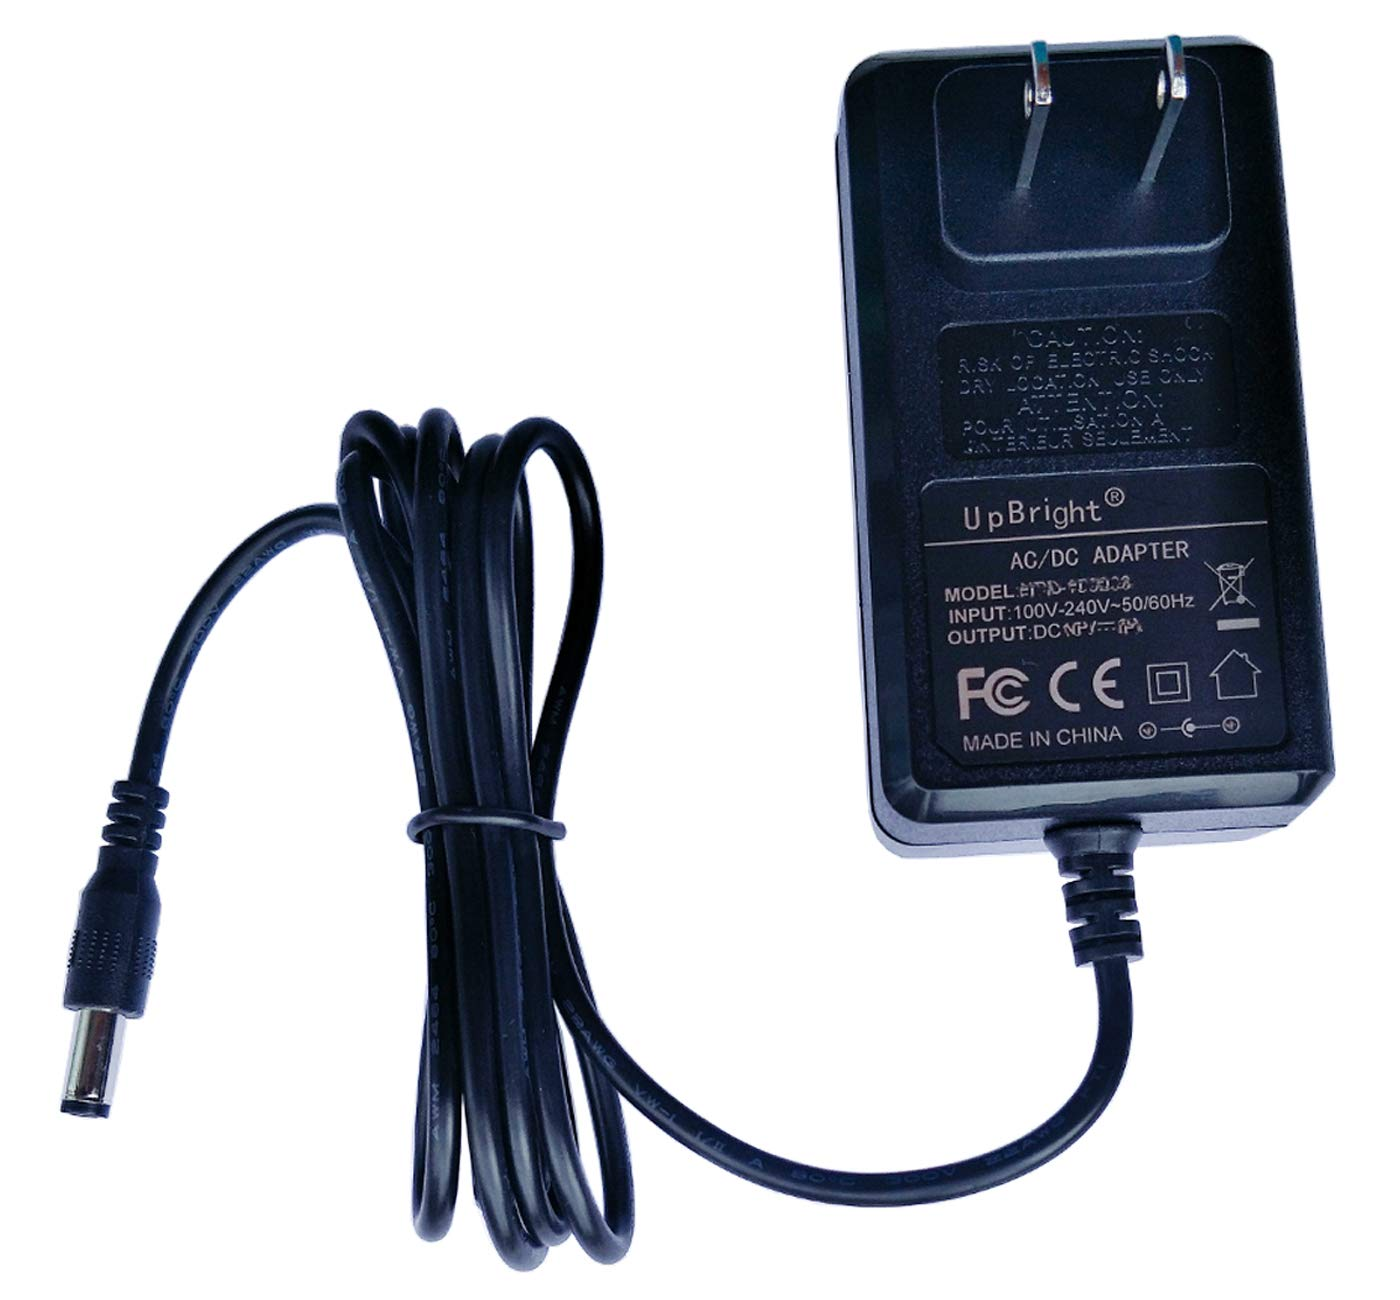 UpBright AC/DC Adapter Compatible with Bose Companion 20 Multimedia Speaker Model PSM36W-180 P/N 330733-0020 30225-001 101PS-024 371415-0010 SPKR 329509-1300 NU60-6170200-I3 18V Power Supply Charger